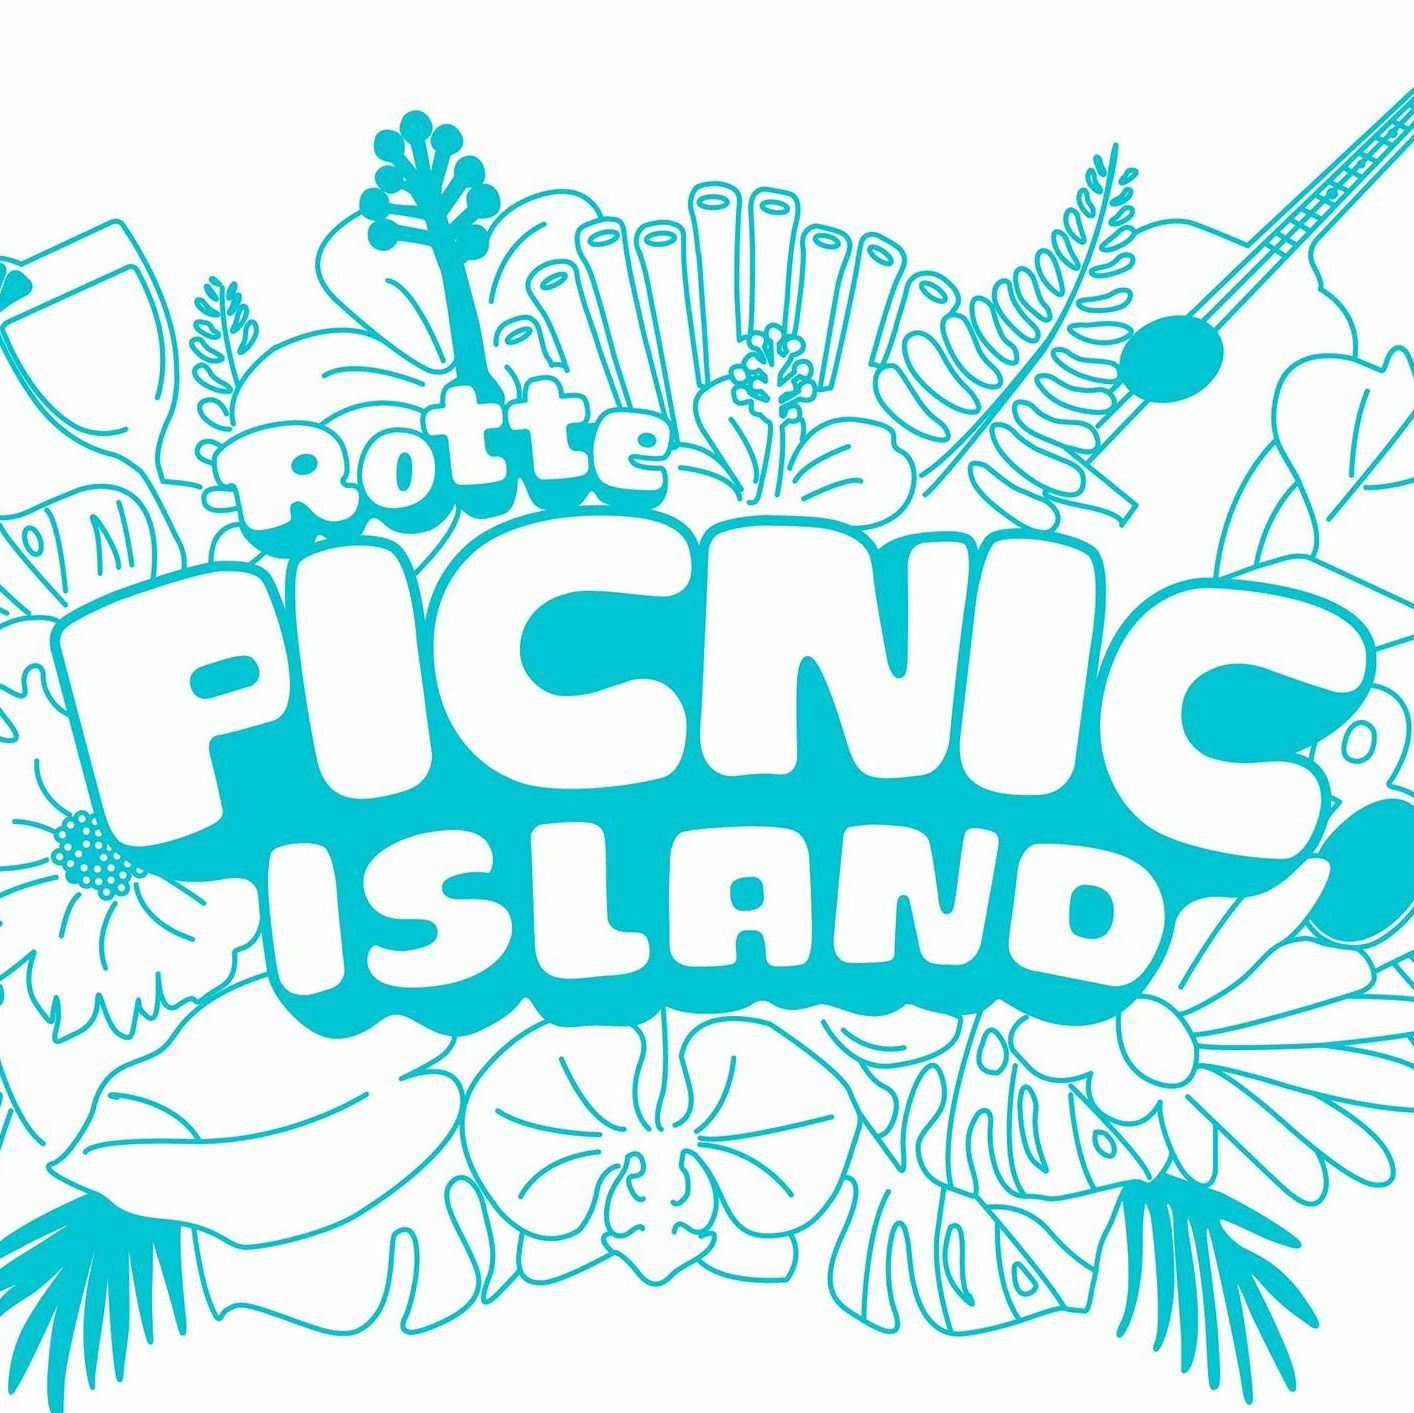 rotte-picnic-island-outdoor